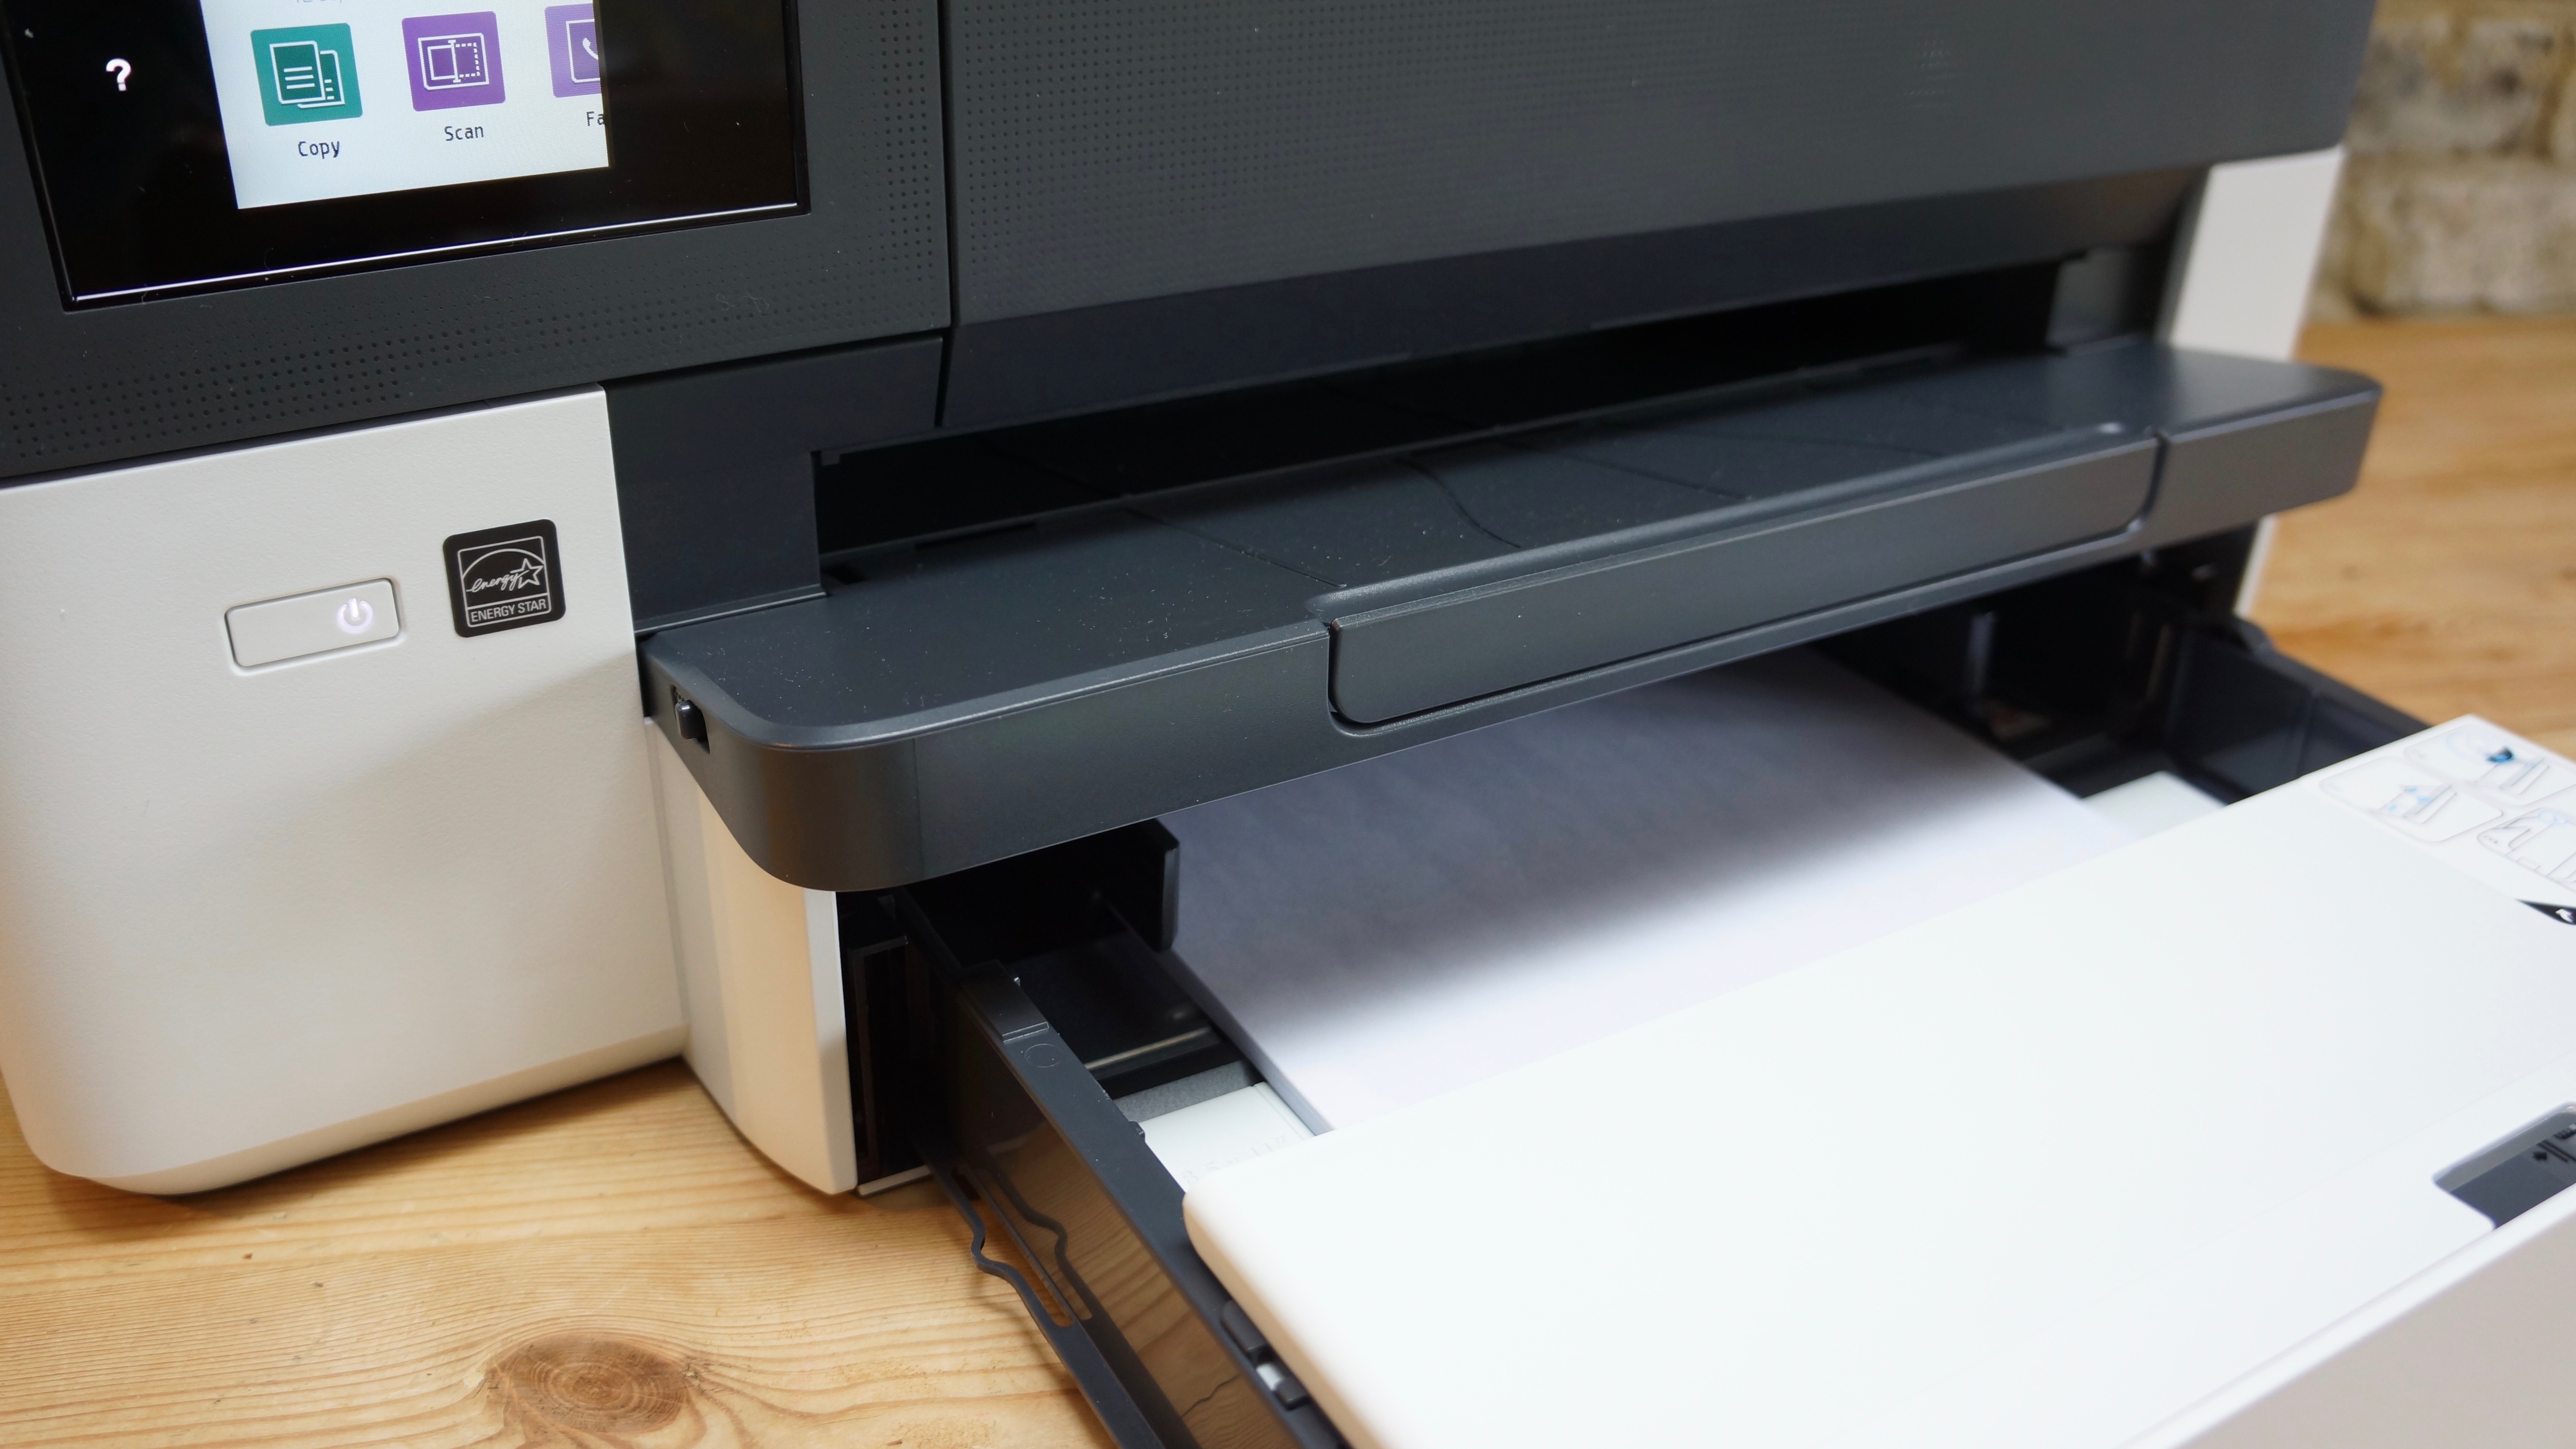 Paper tray and printer